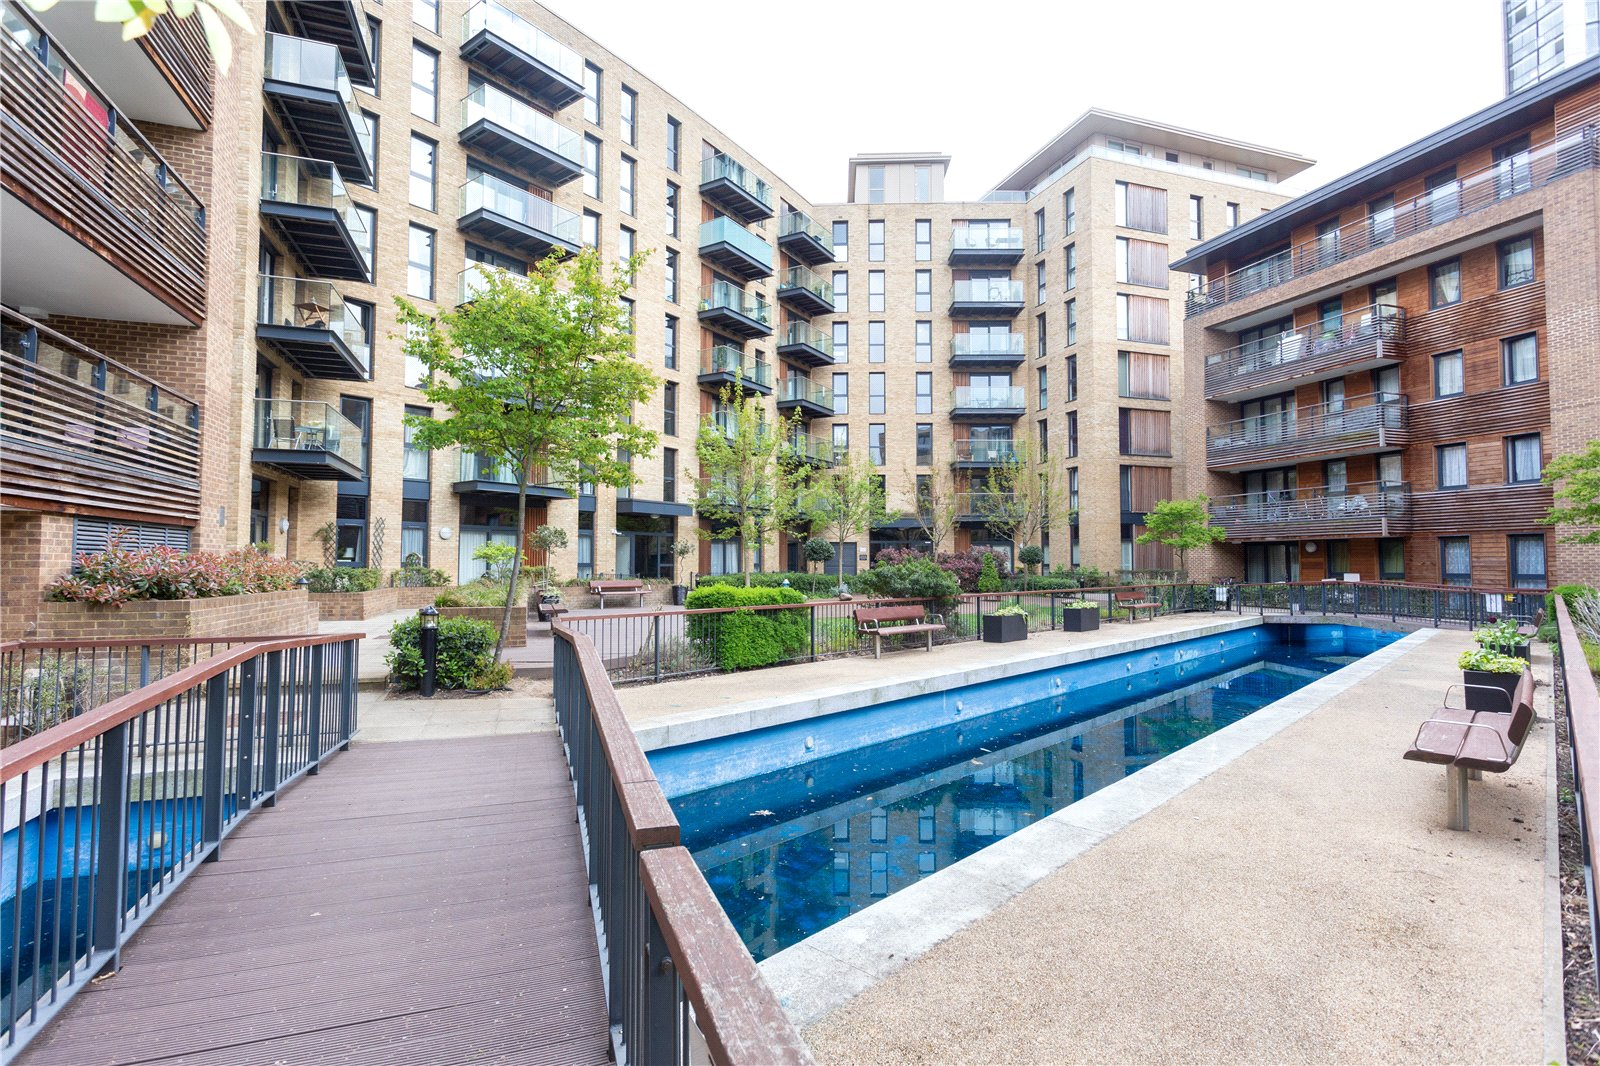 Surrey Quays Road, Canada Water, London, SE16 Image 12